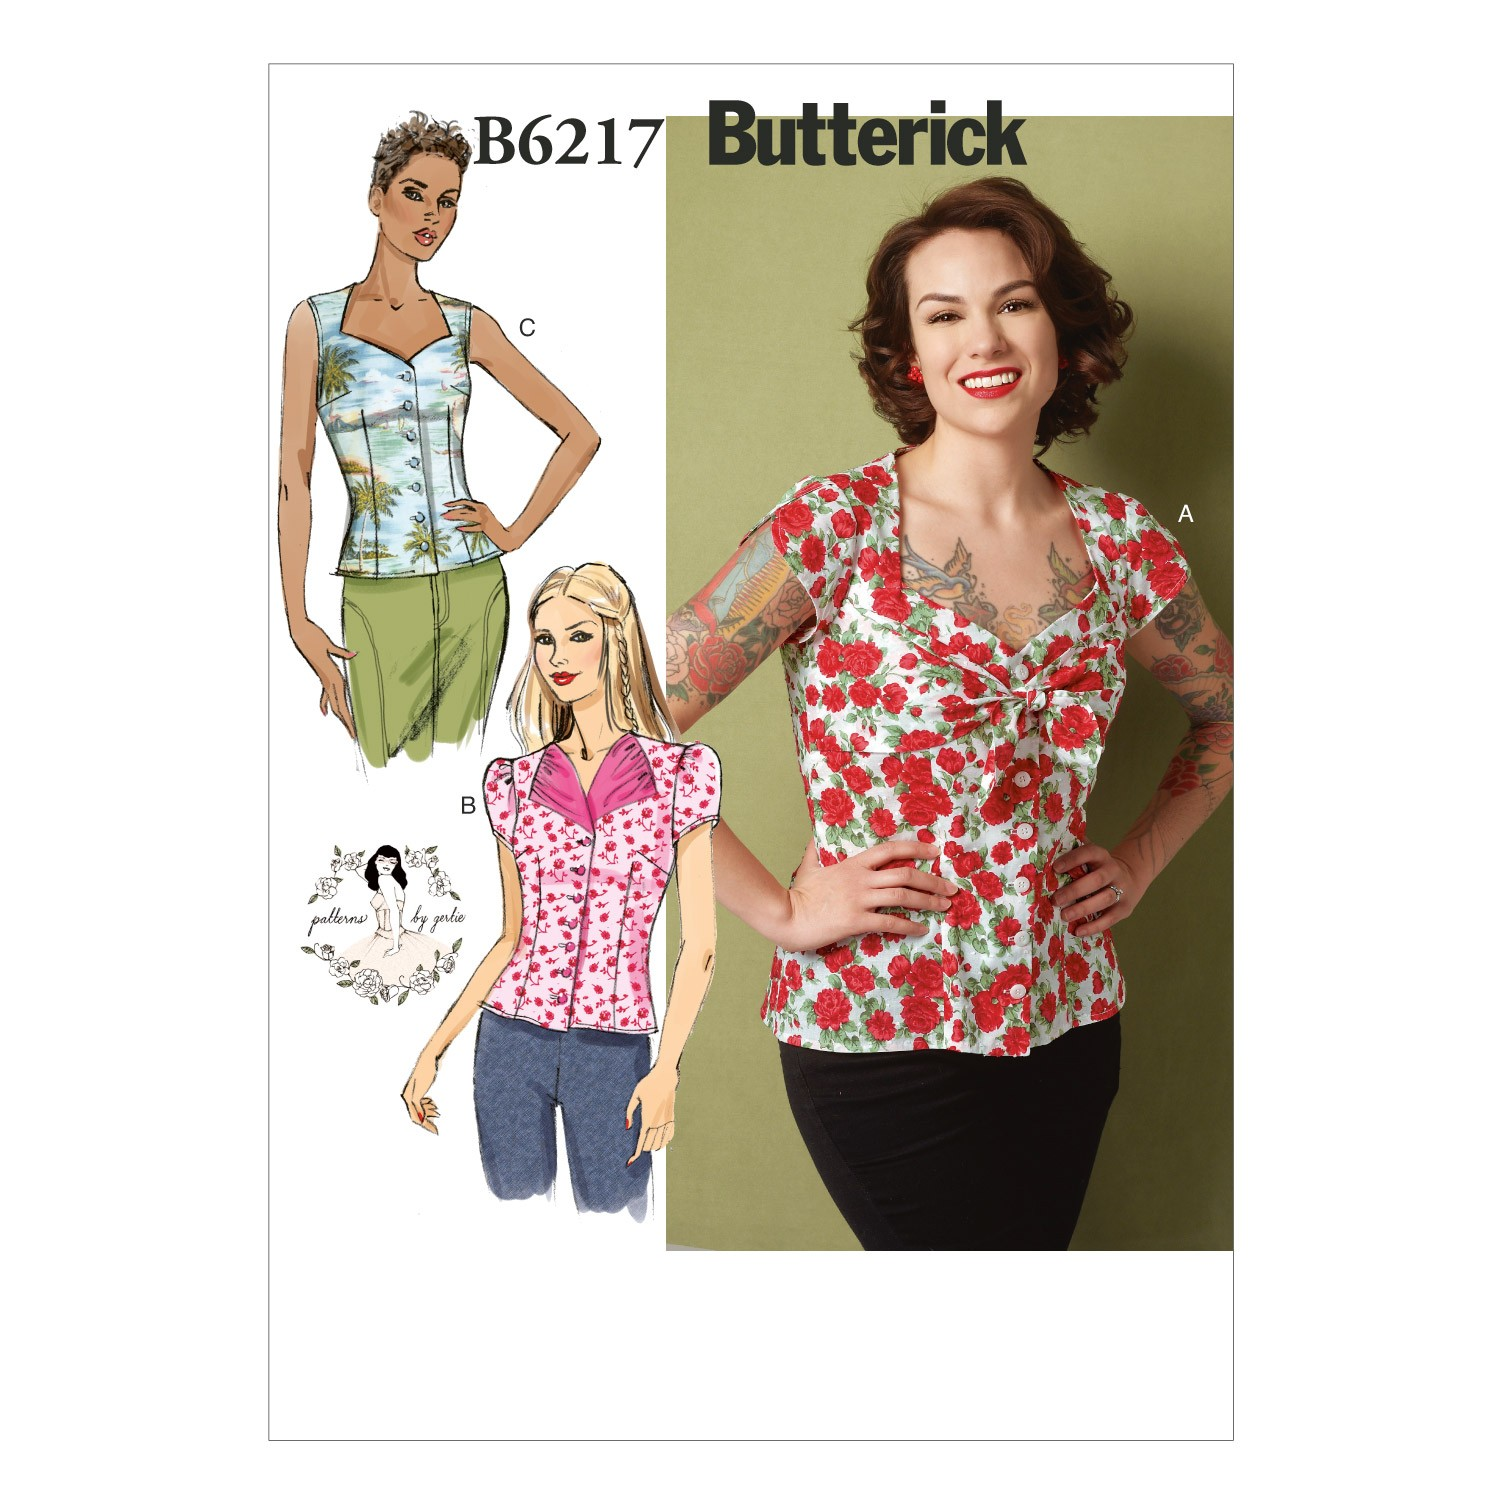 Butterick Sewing Pattern 6217 Misses' Loose Fitting Blouse Shirt